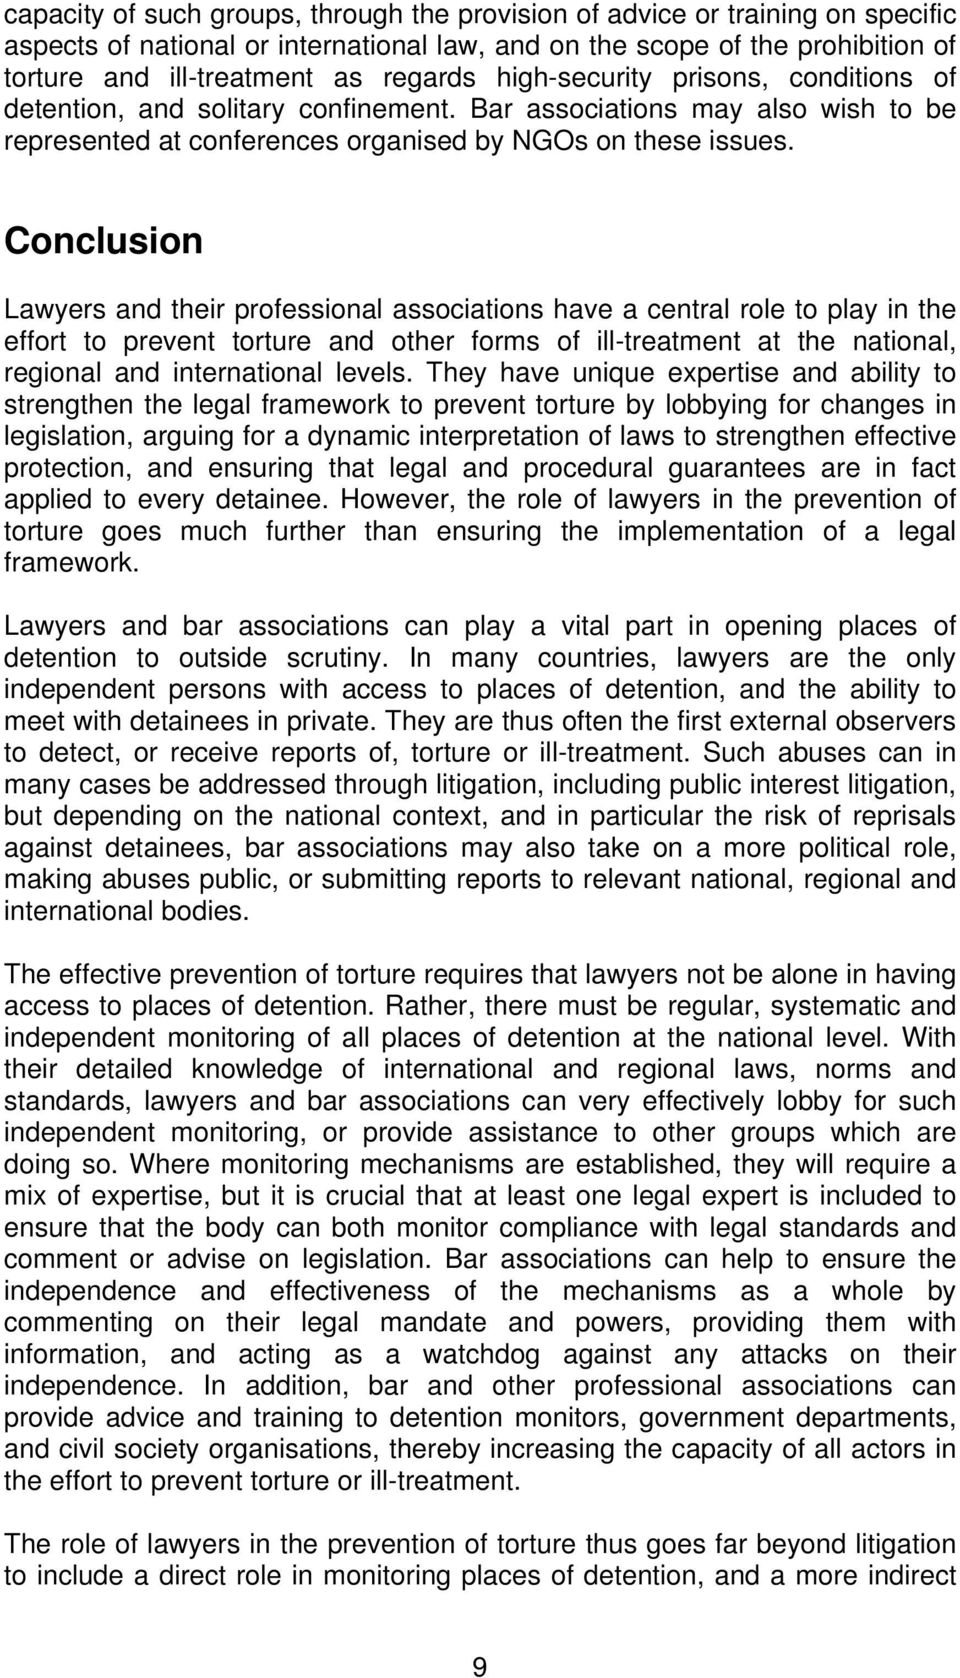 Conclusion Lawyers and their professional associations have a central role to play in the effort to prevent torture and other forms of ill-treatment at the national, regional and international levels.